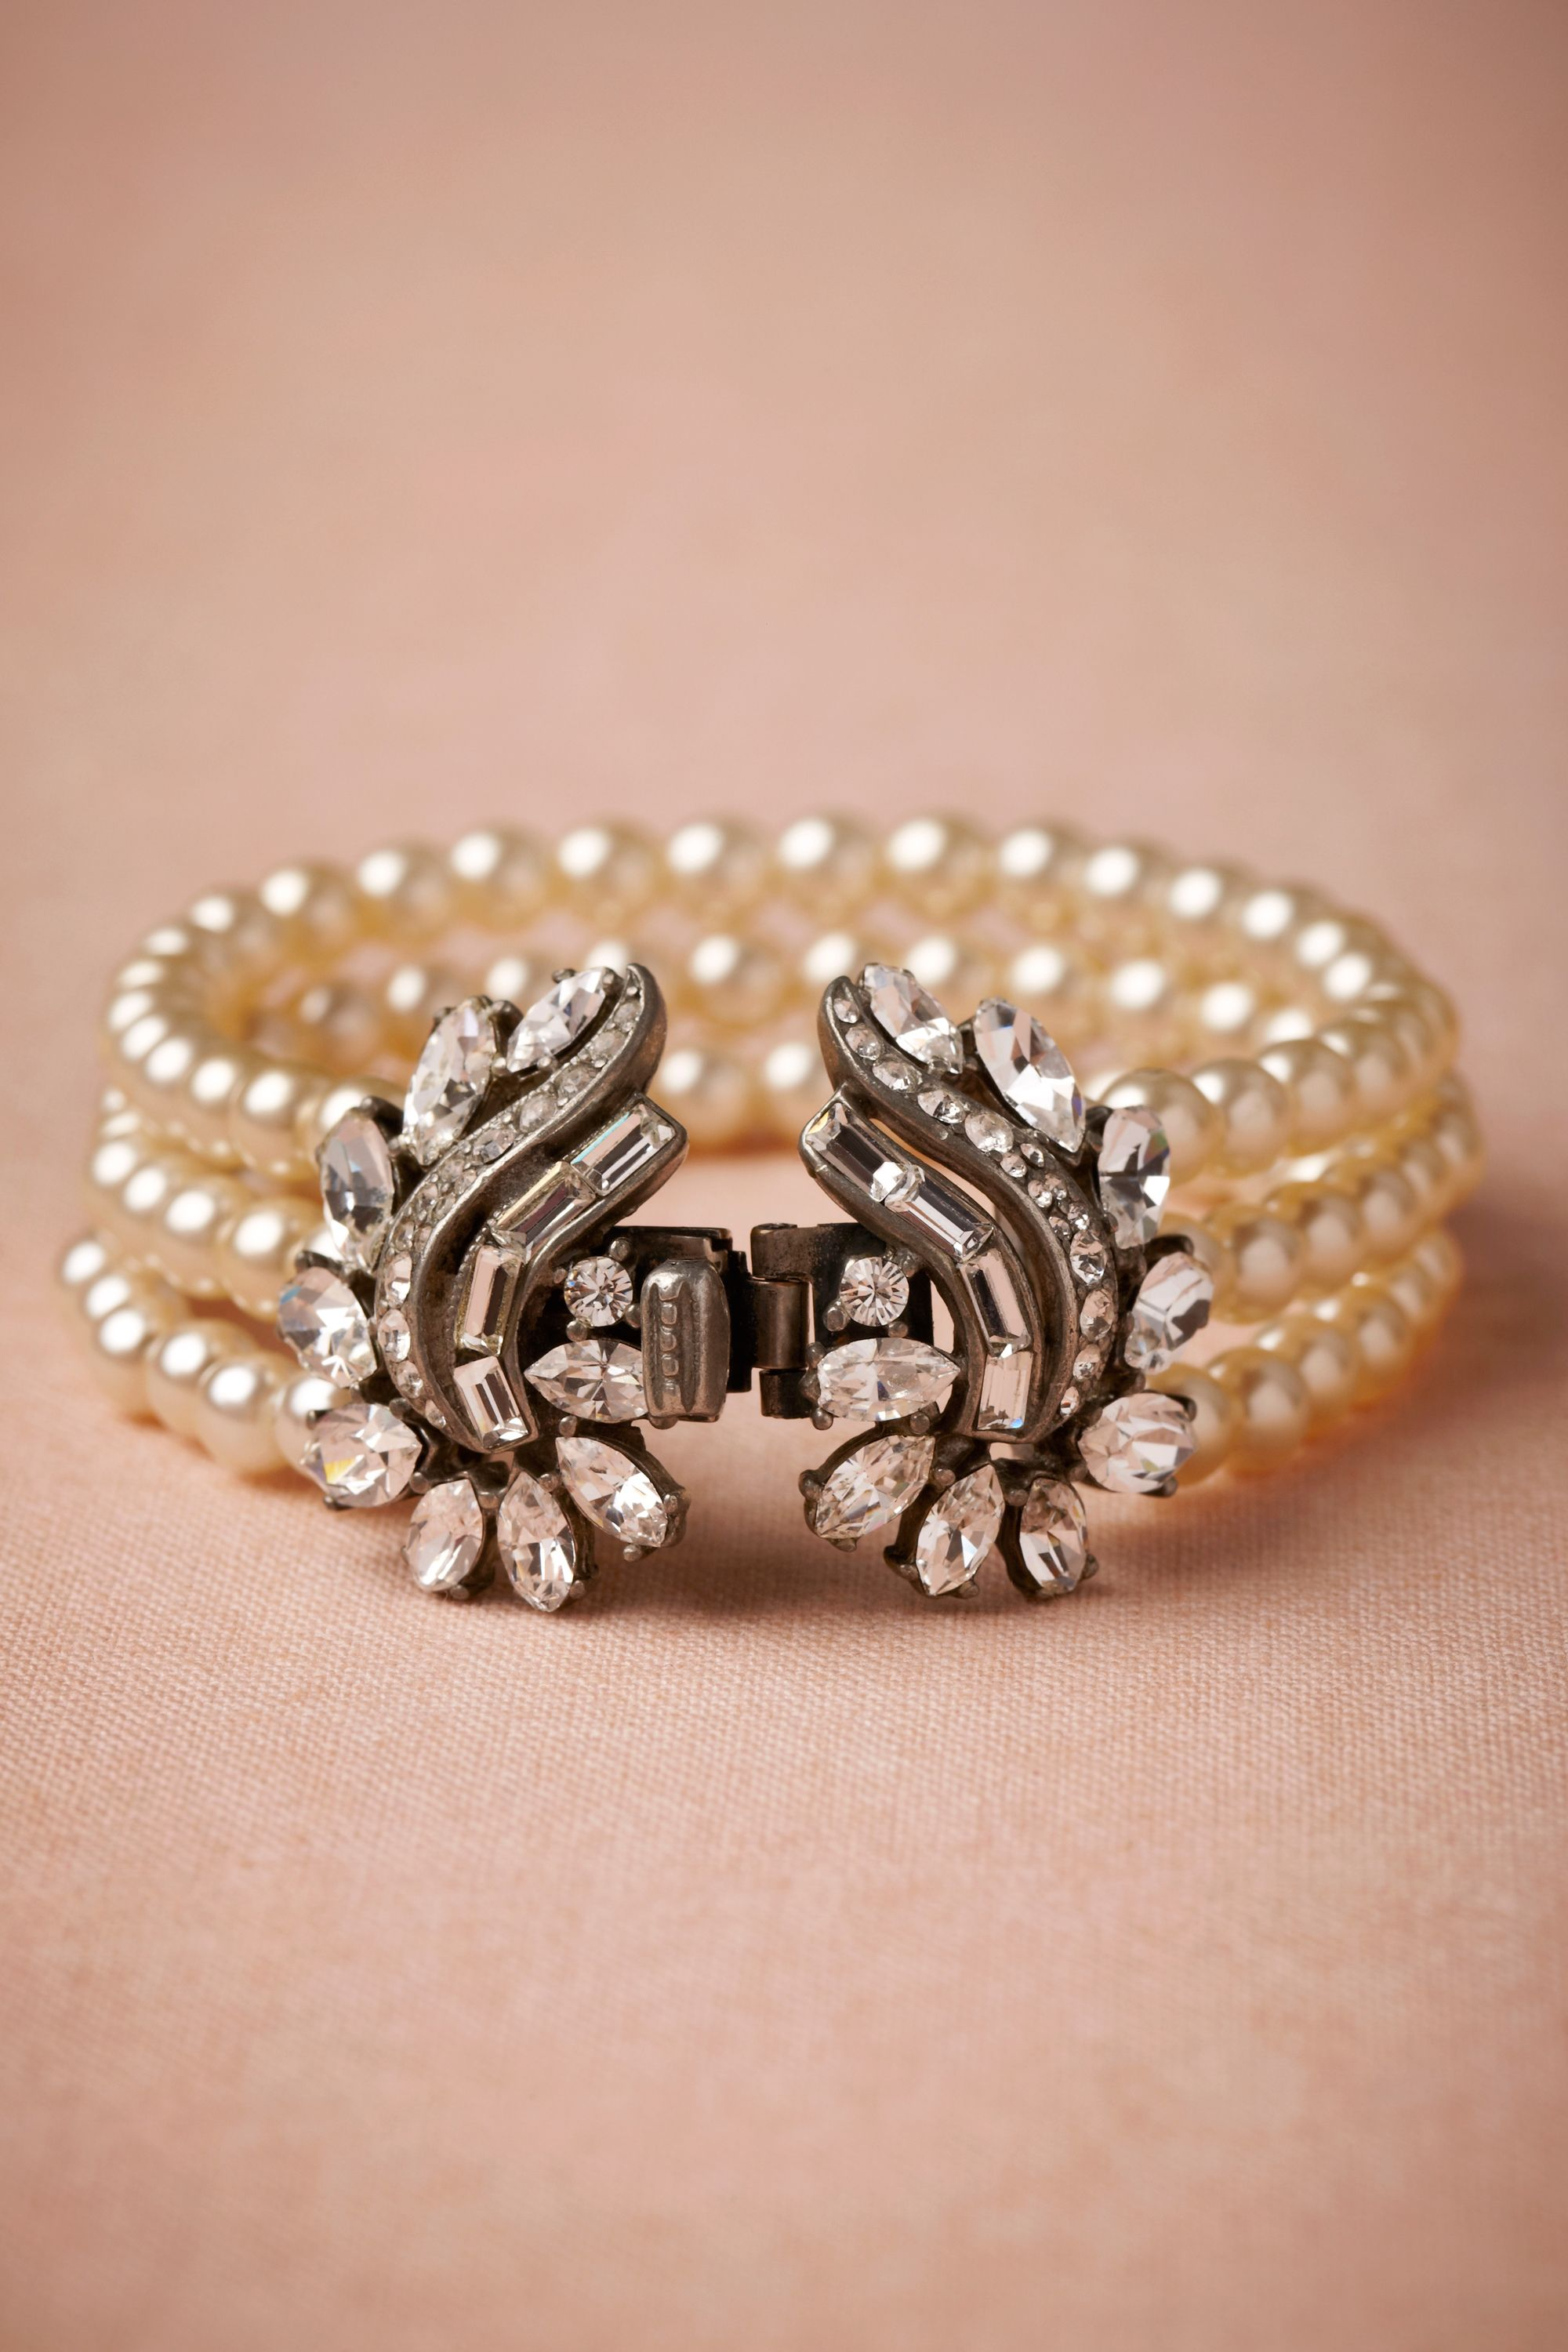 Luna Bracelet BHLDN Vintage Wedding Jewelry